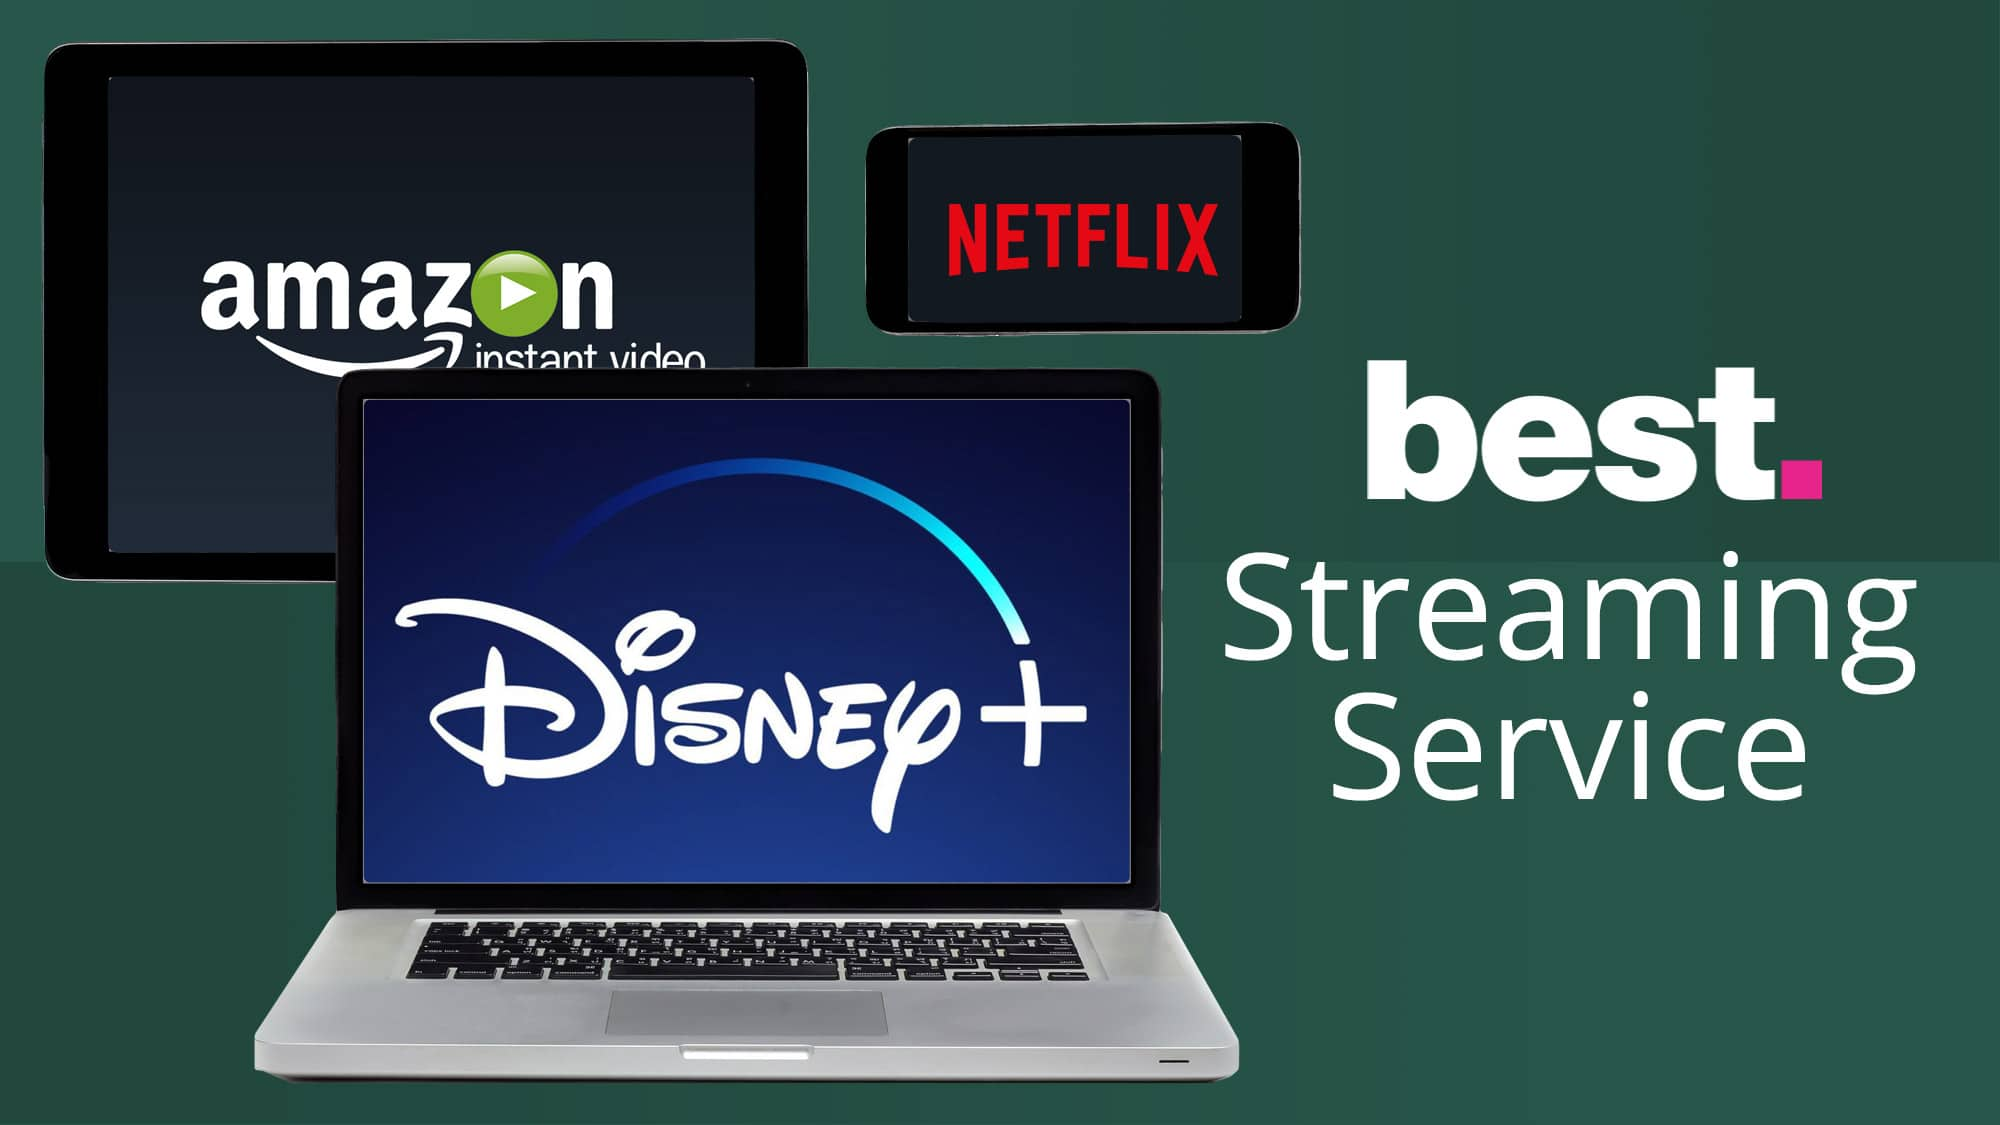 Top American Streaming service providers to watch Movies